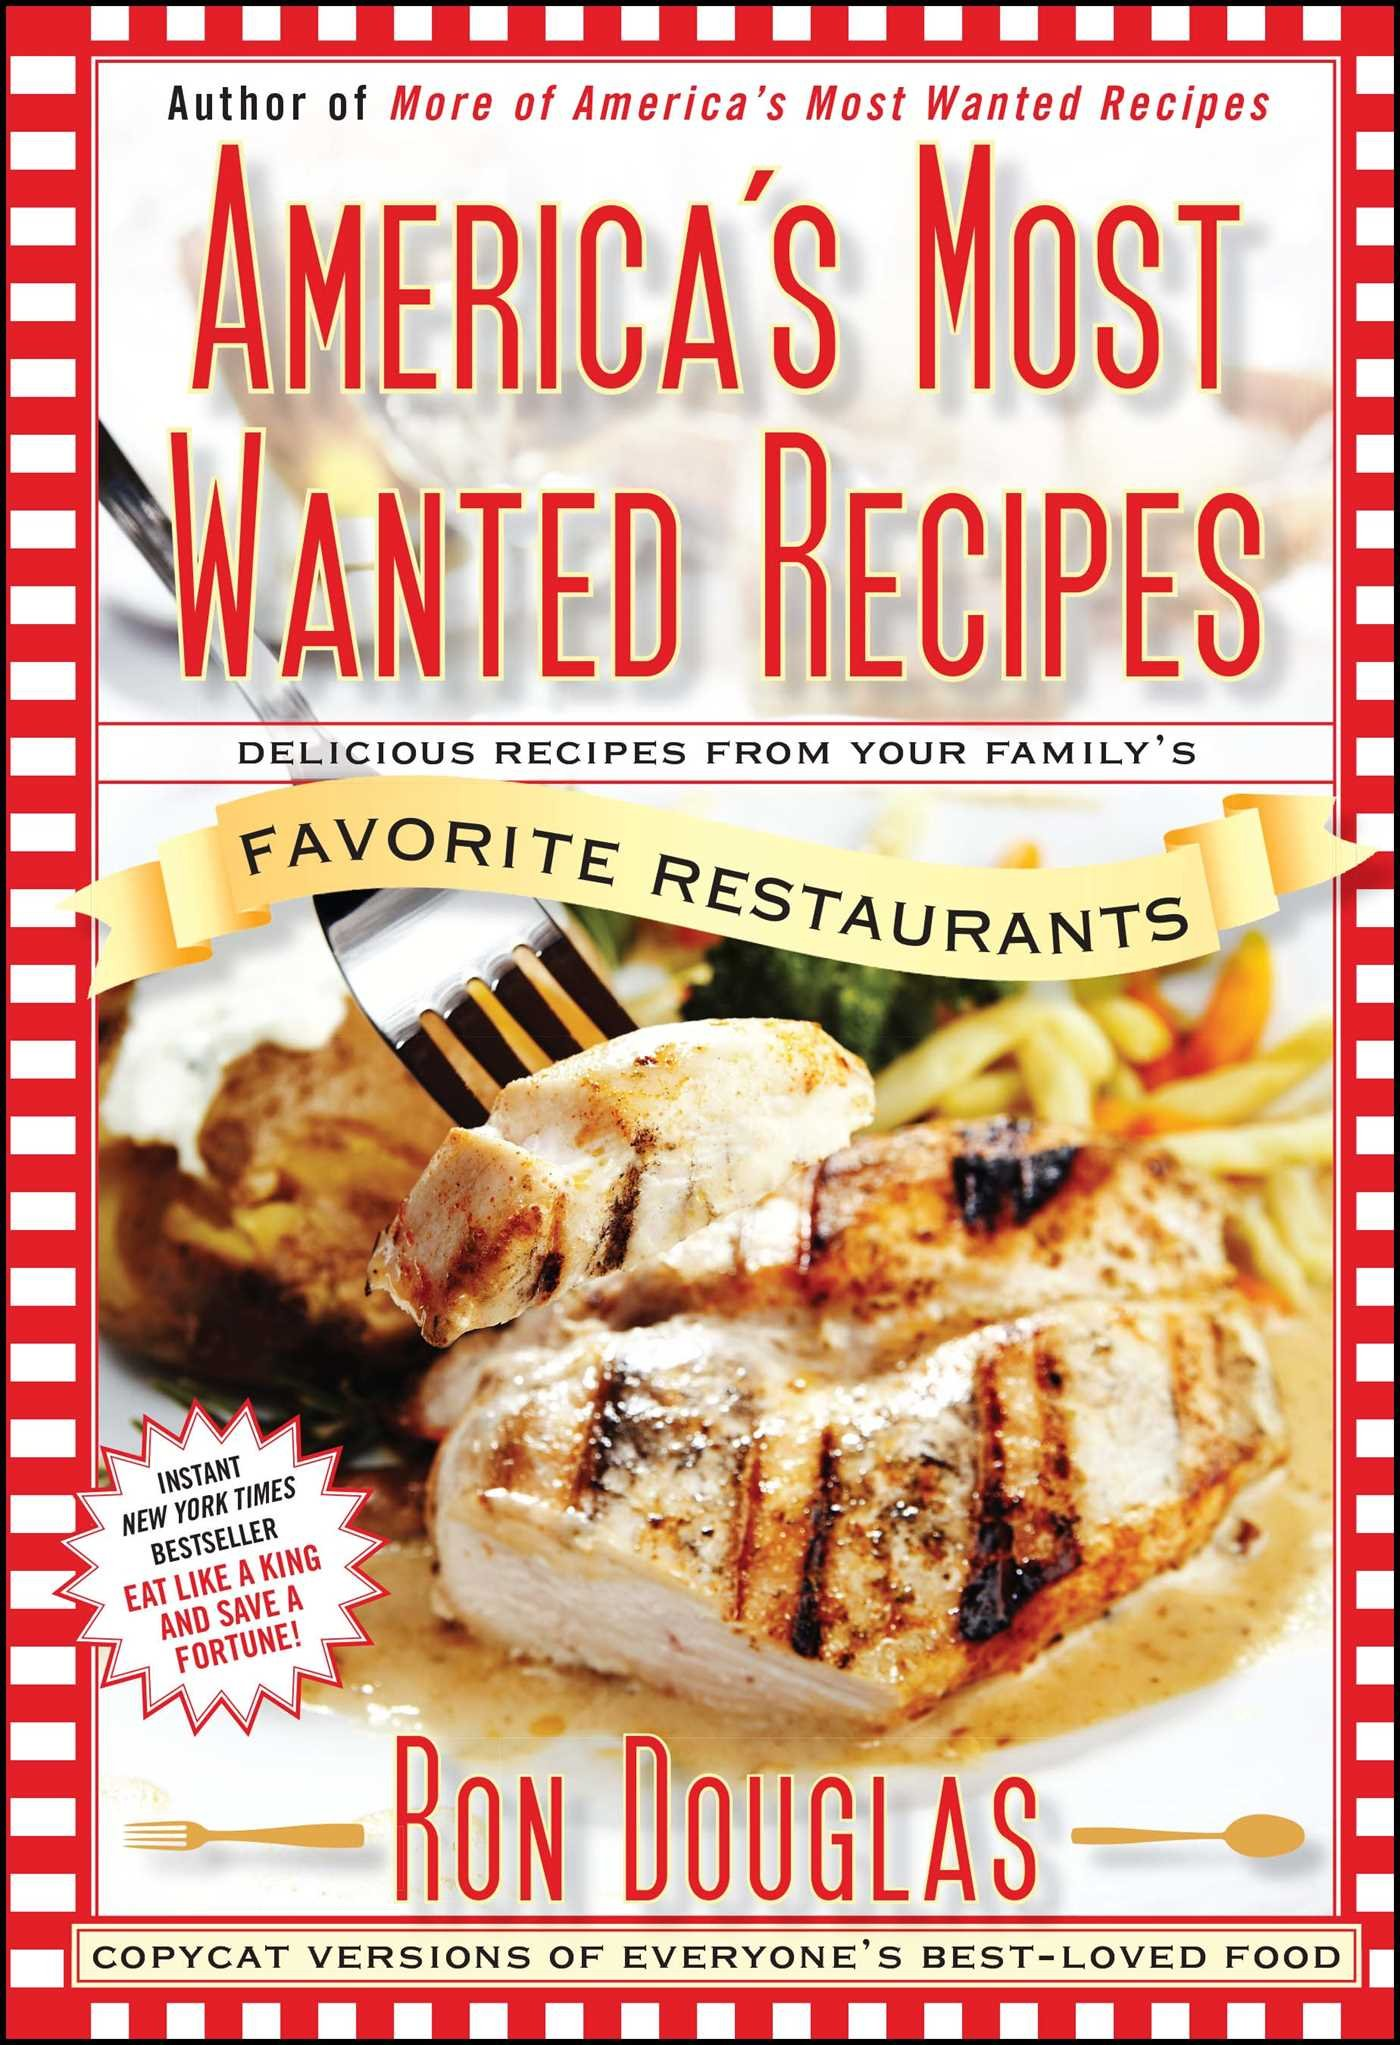 Americas most wanted recipes delicious recipes from your familys americas most wanted recipes delicious recipes from your familys favorite restaurants americas most wanted recipes series ron douglas 9781439147061 forumfinder Gallery